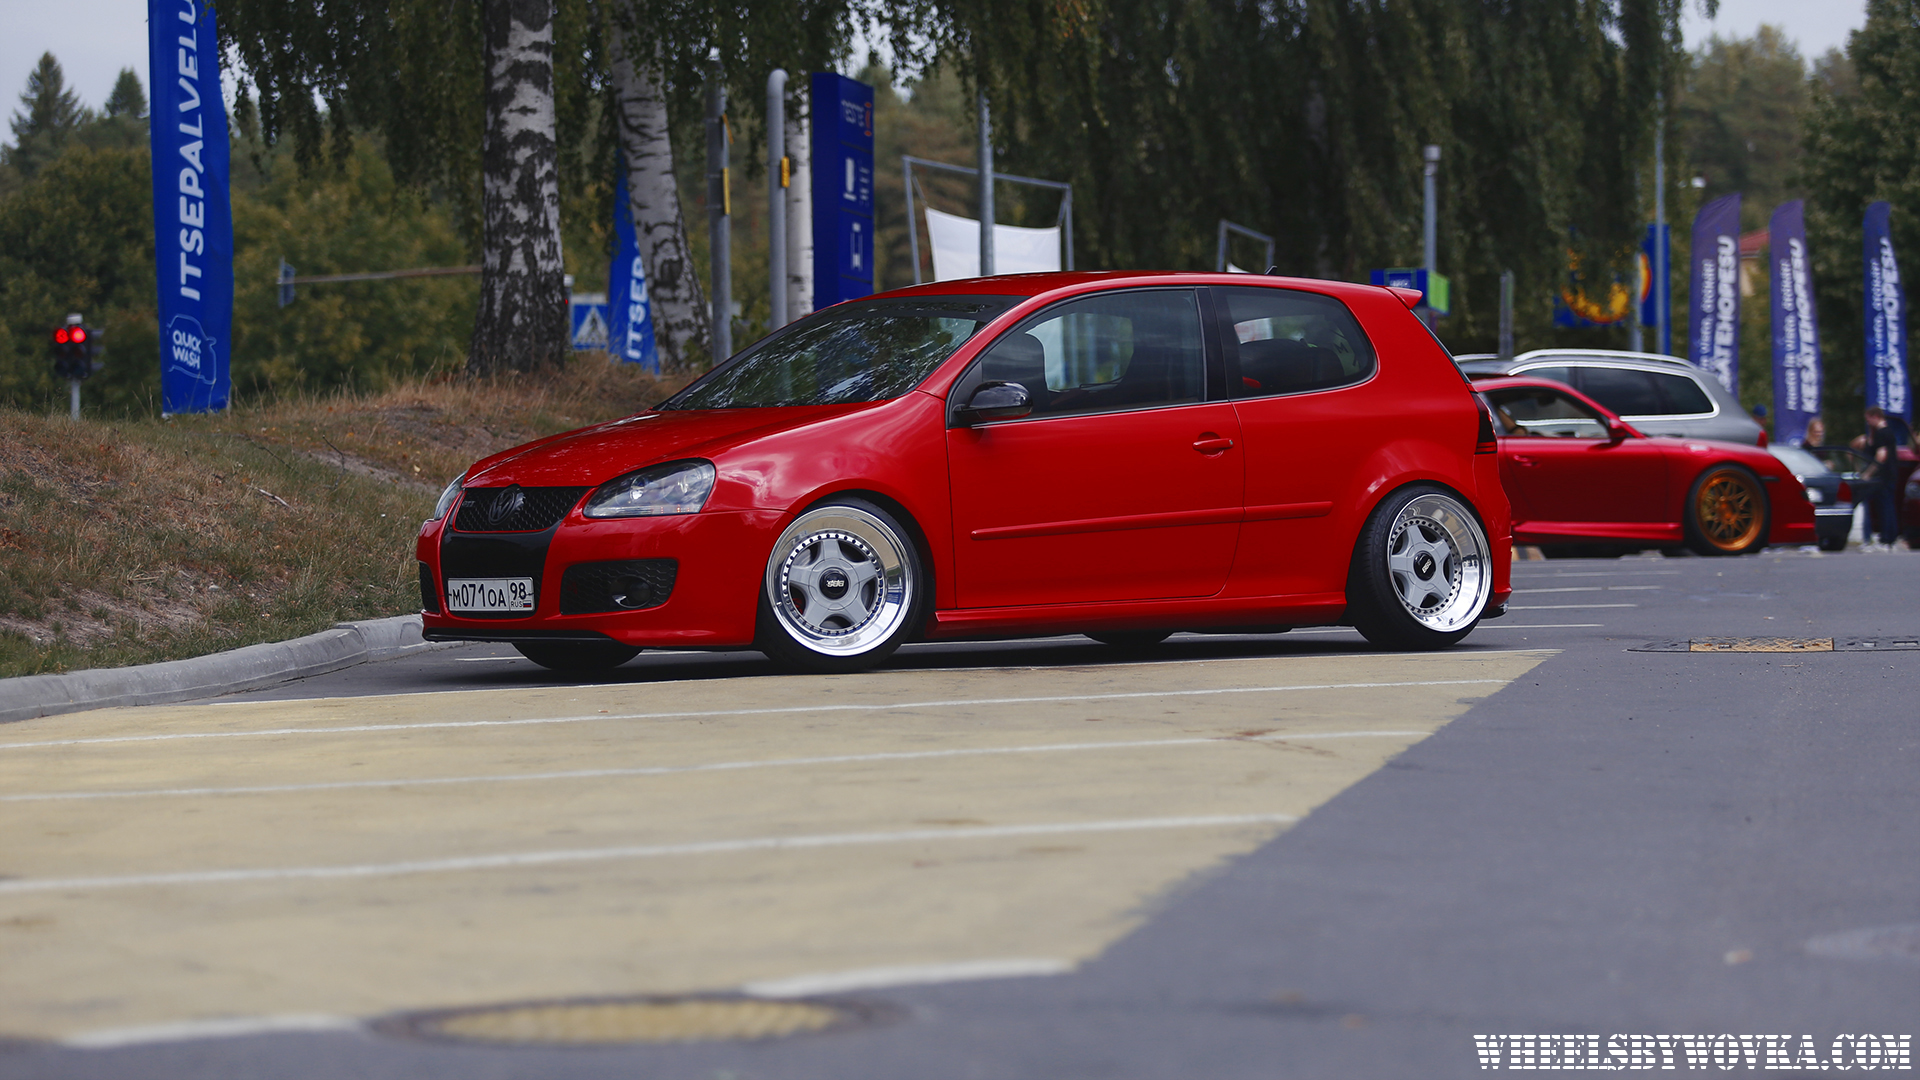 fitted-fest-lahti-finland-cdlcco-2018-by-wheelsbywovka-4